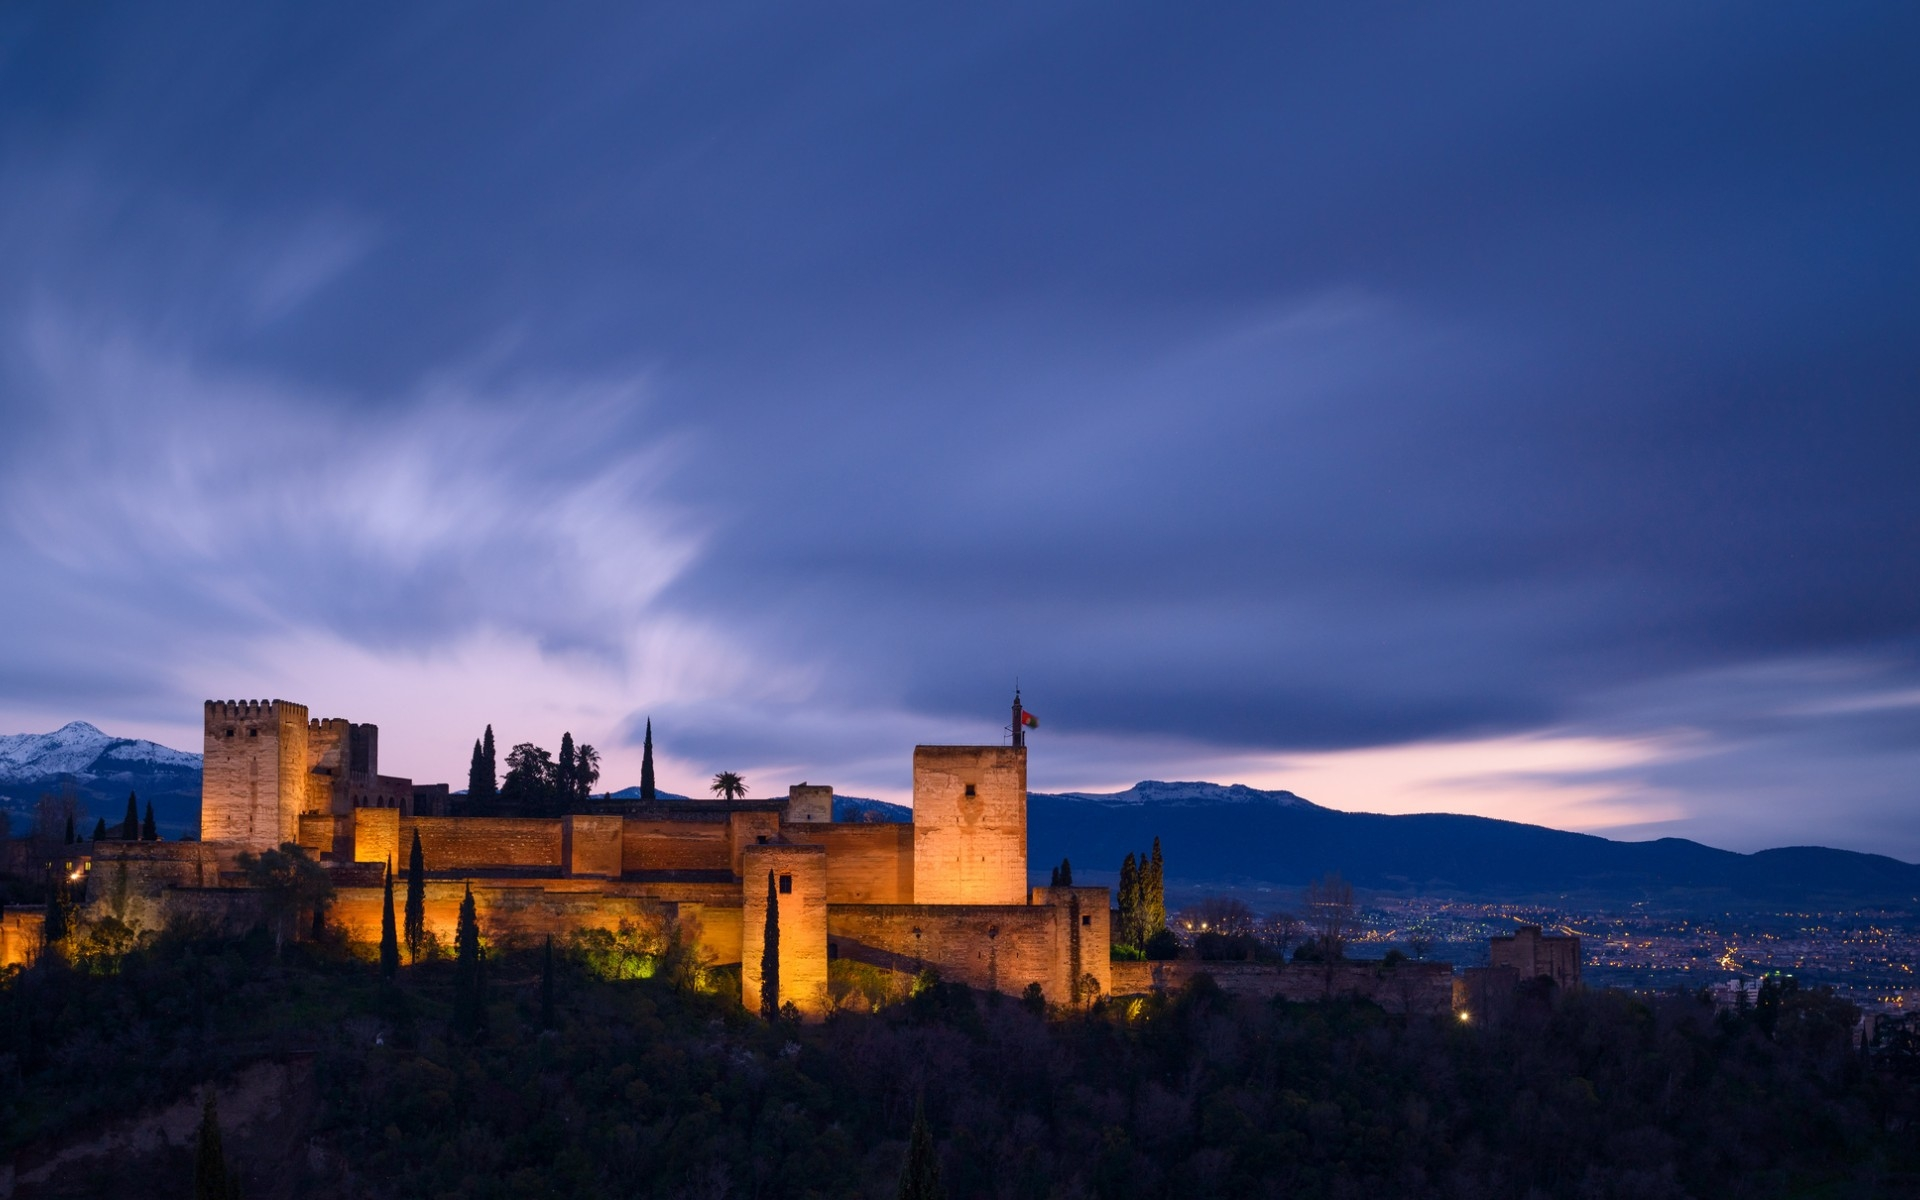 Spain Full Hd Wallpaper And Background Image: Granada-night-view Full HD Wallpaper And Background Image